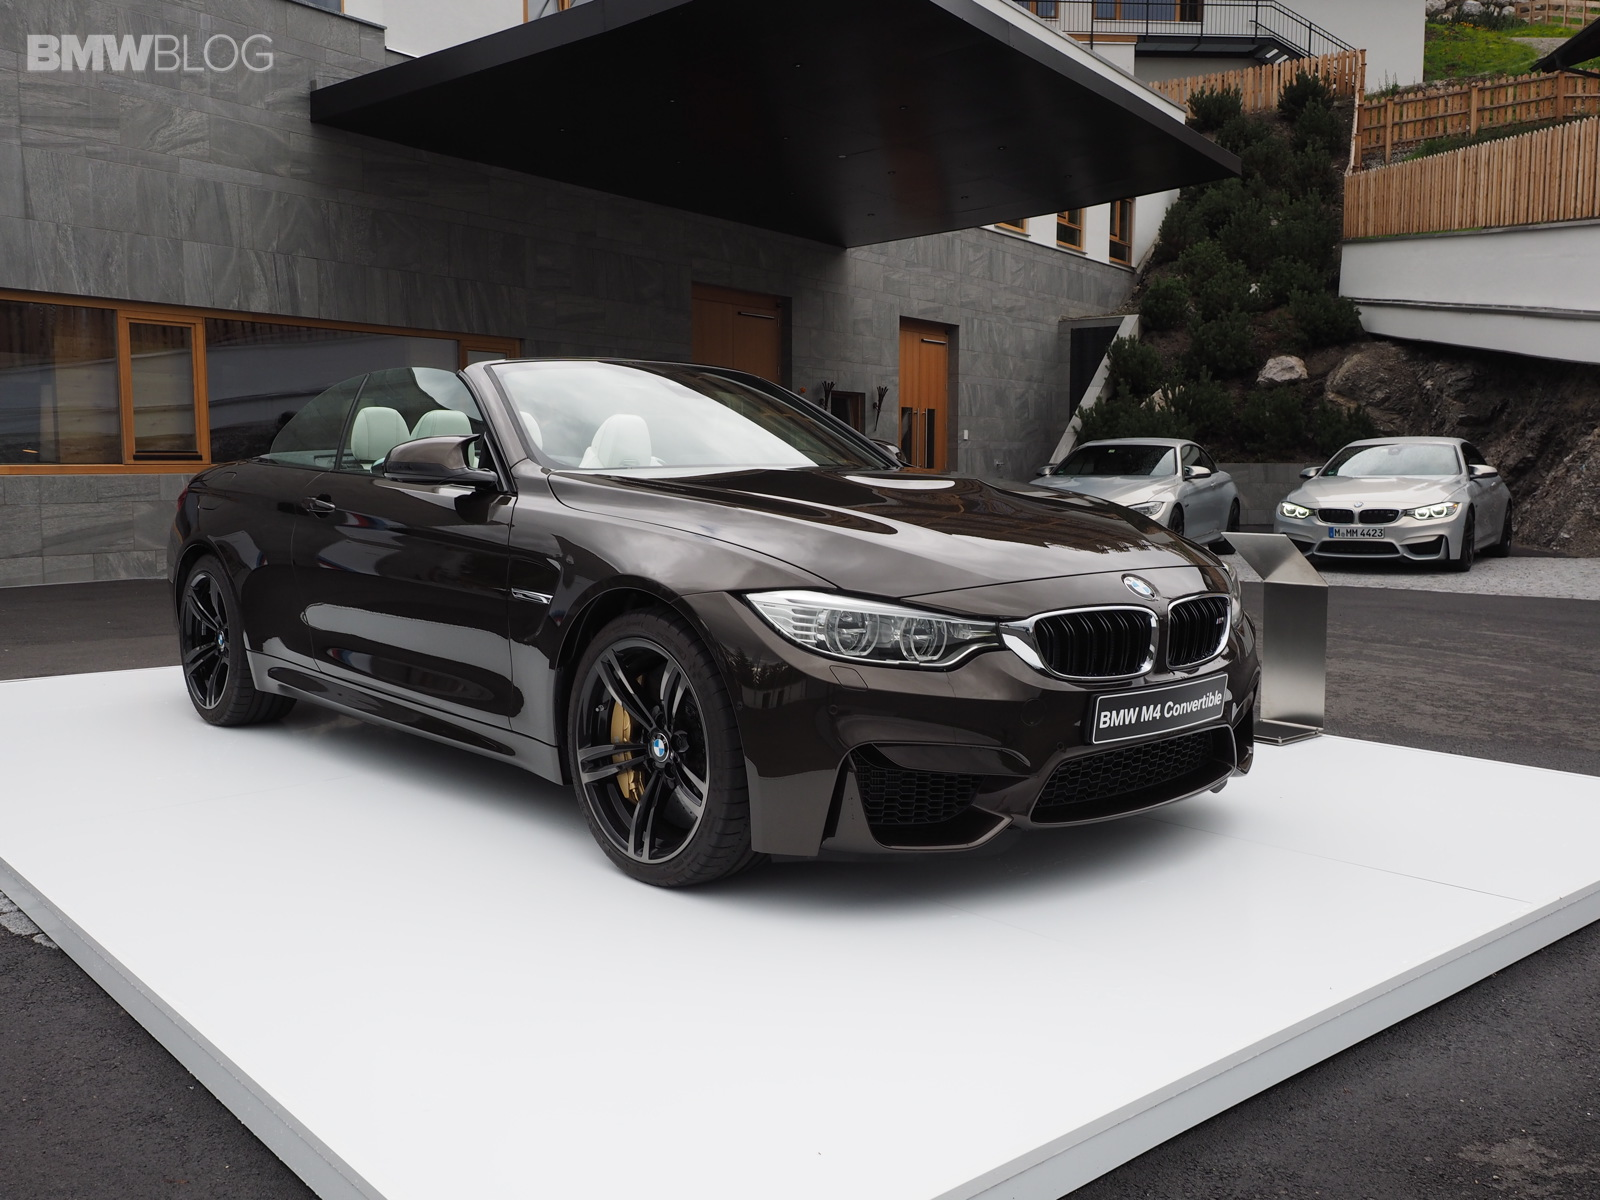 2015 BMW M4 Convertible in Pyrite Brown